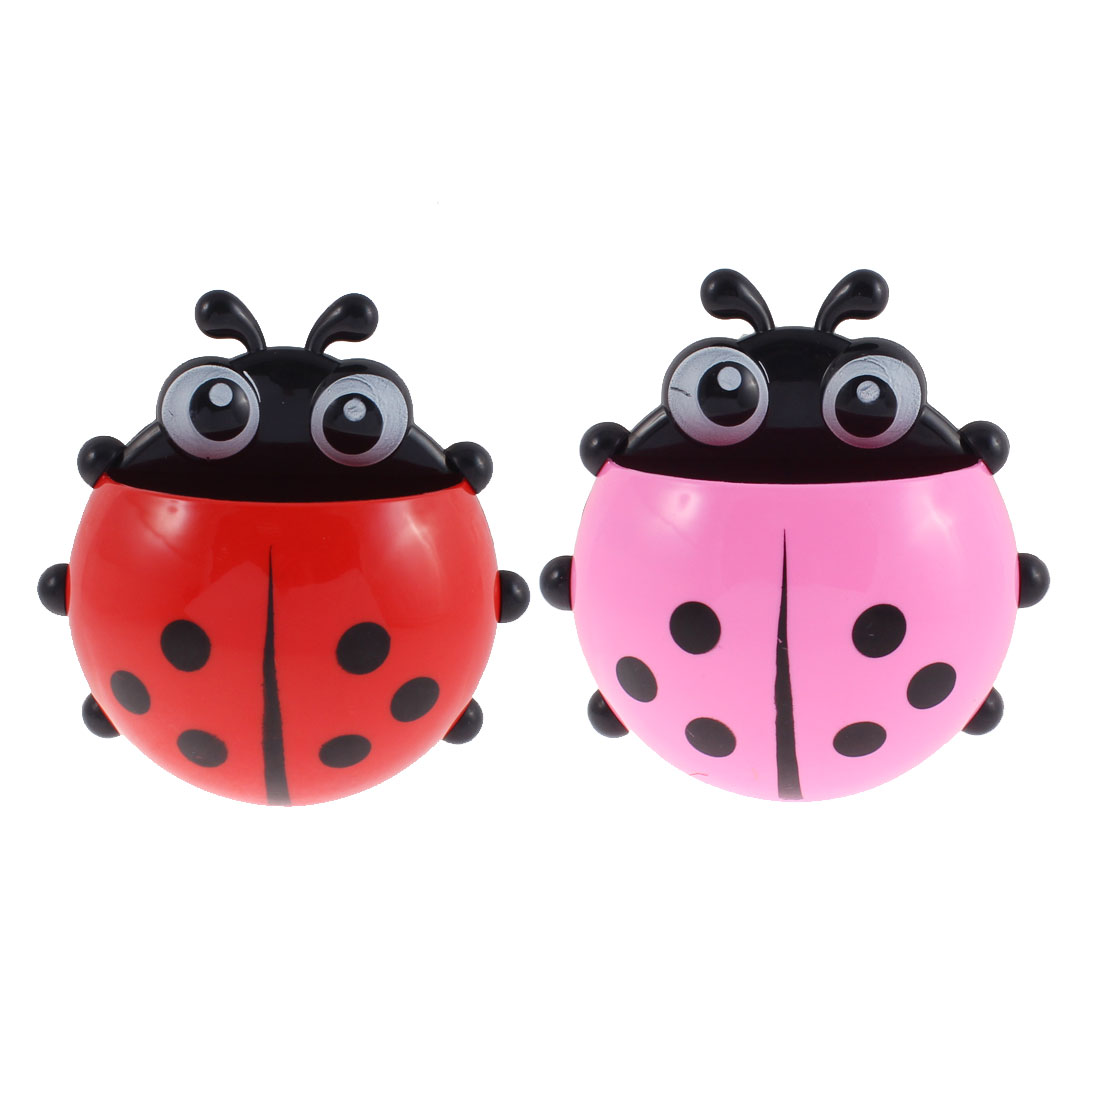 Plastic Ladybird Design Toothbrush Toothpaste Holder Pink Red 2 Pcs